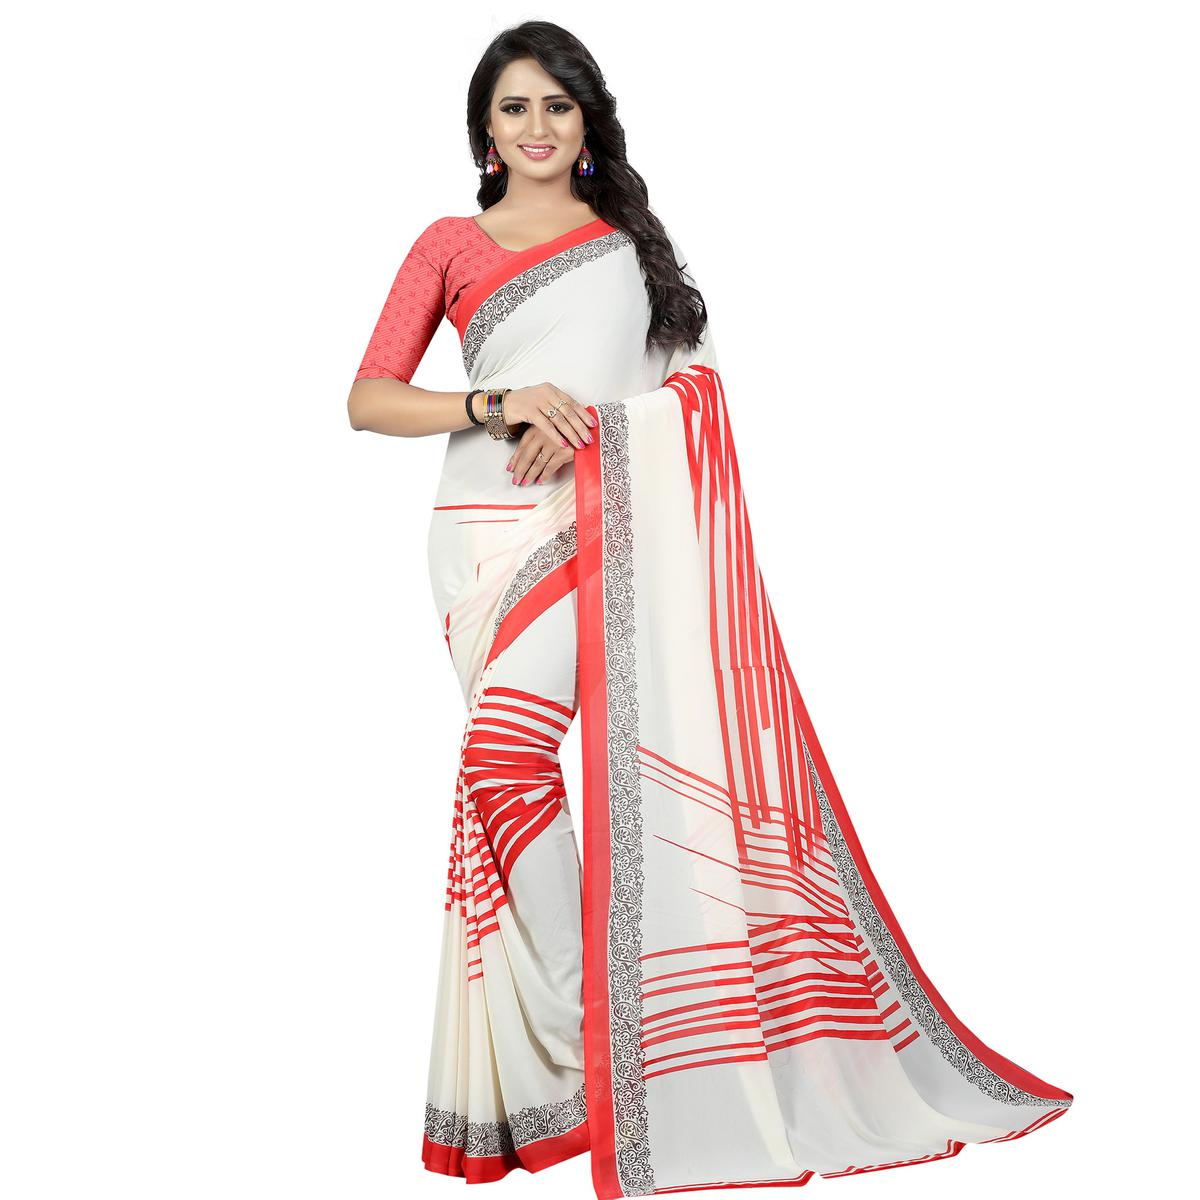 Jazzy White Colored Casual Wear Printed Georgette Saree